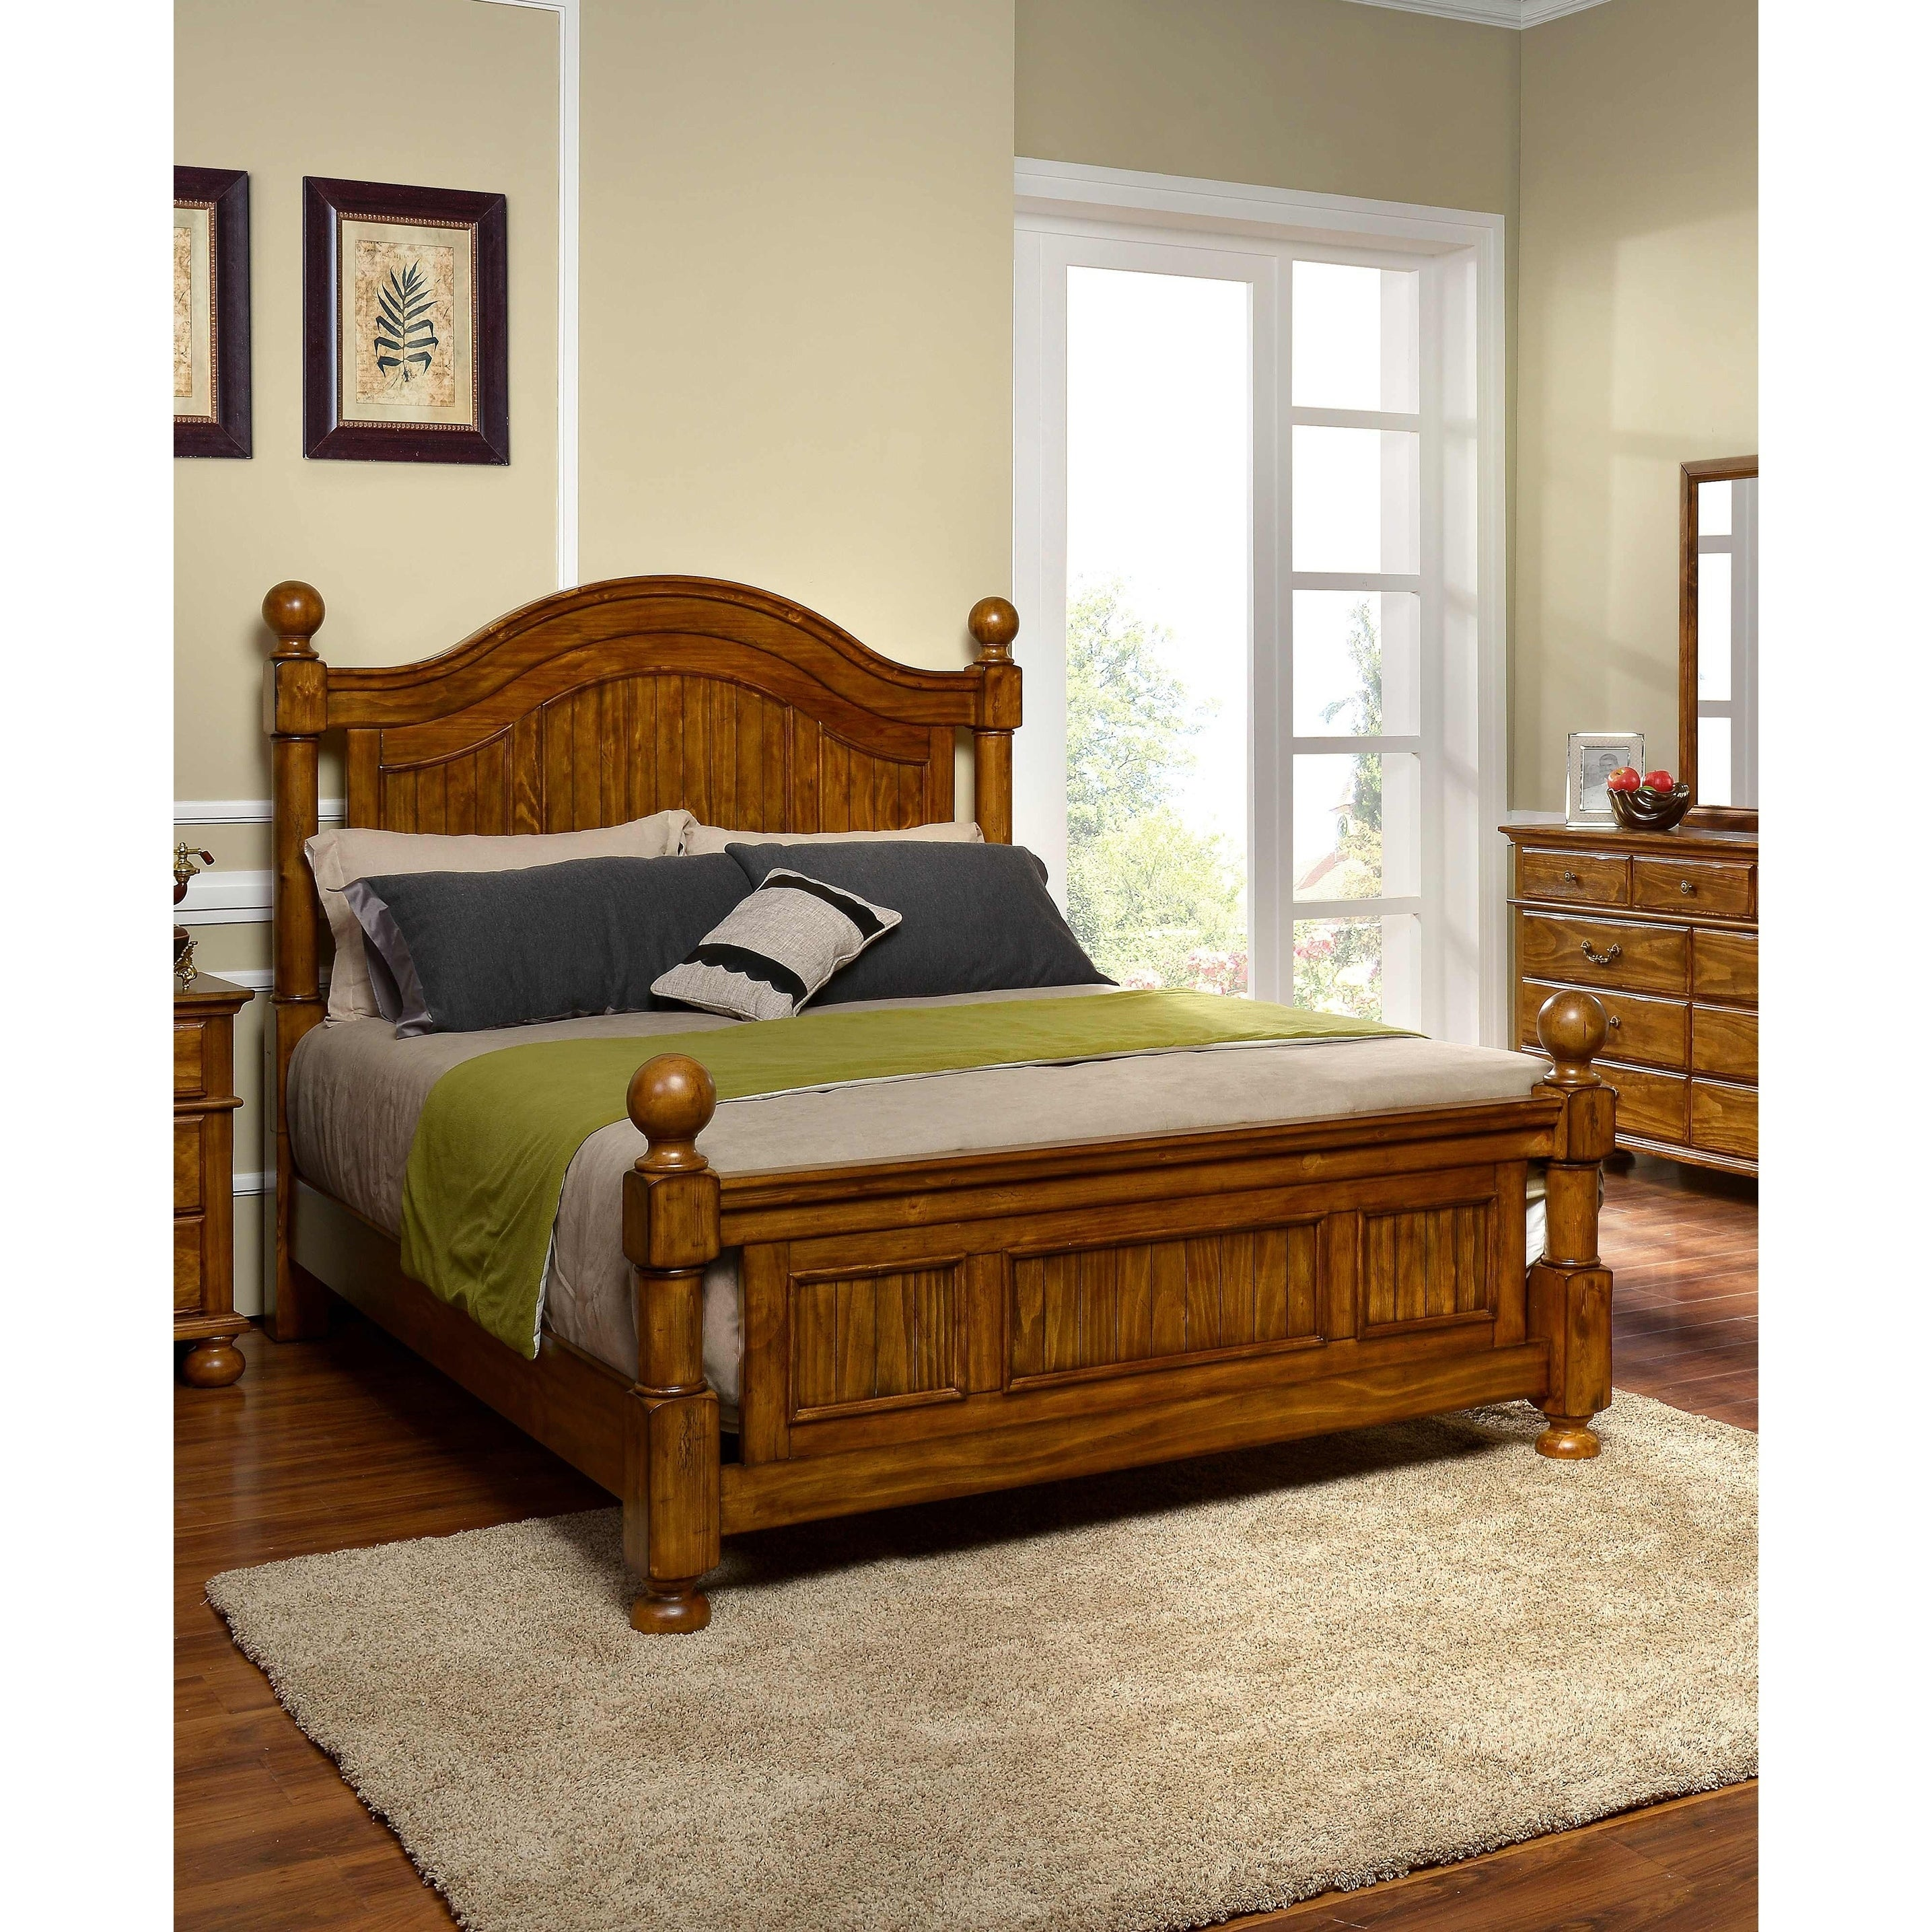 Cumberland Antique Pine Rustic Cal King Bed Overstock 20222919